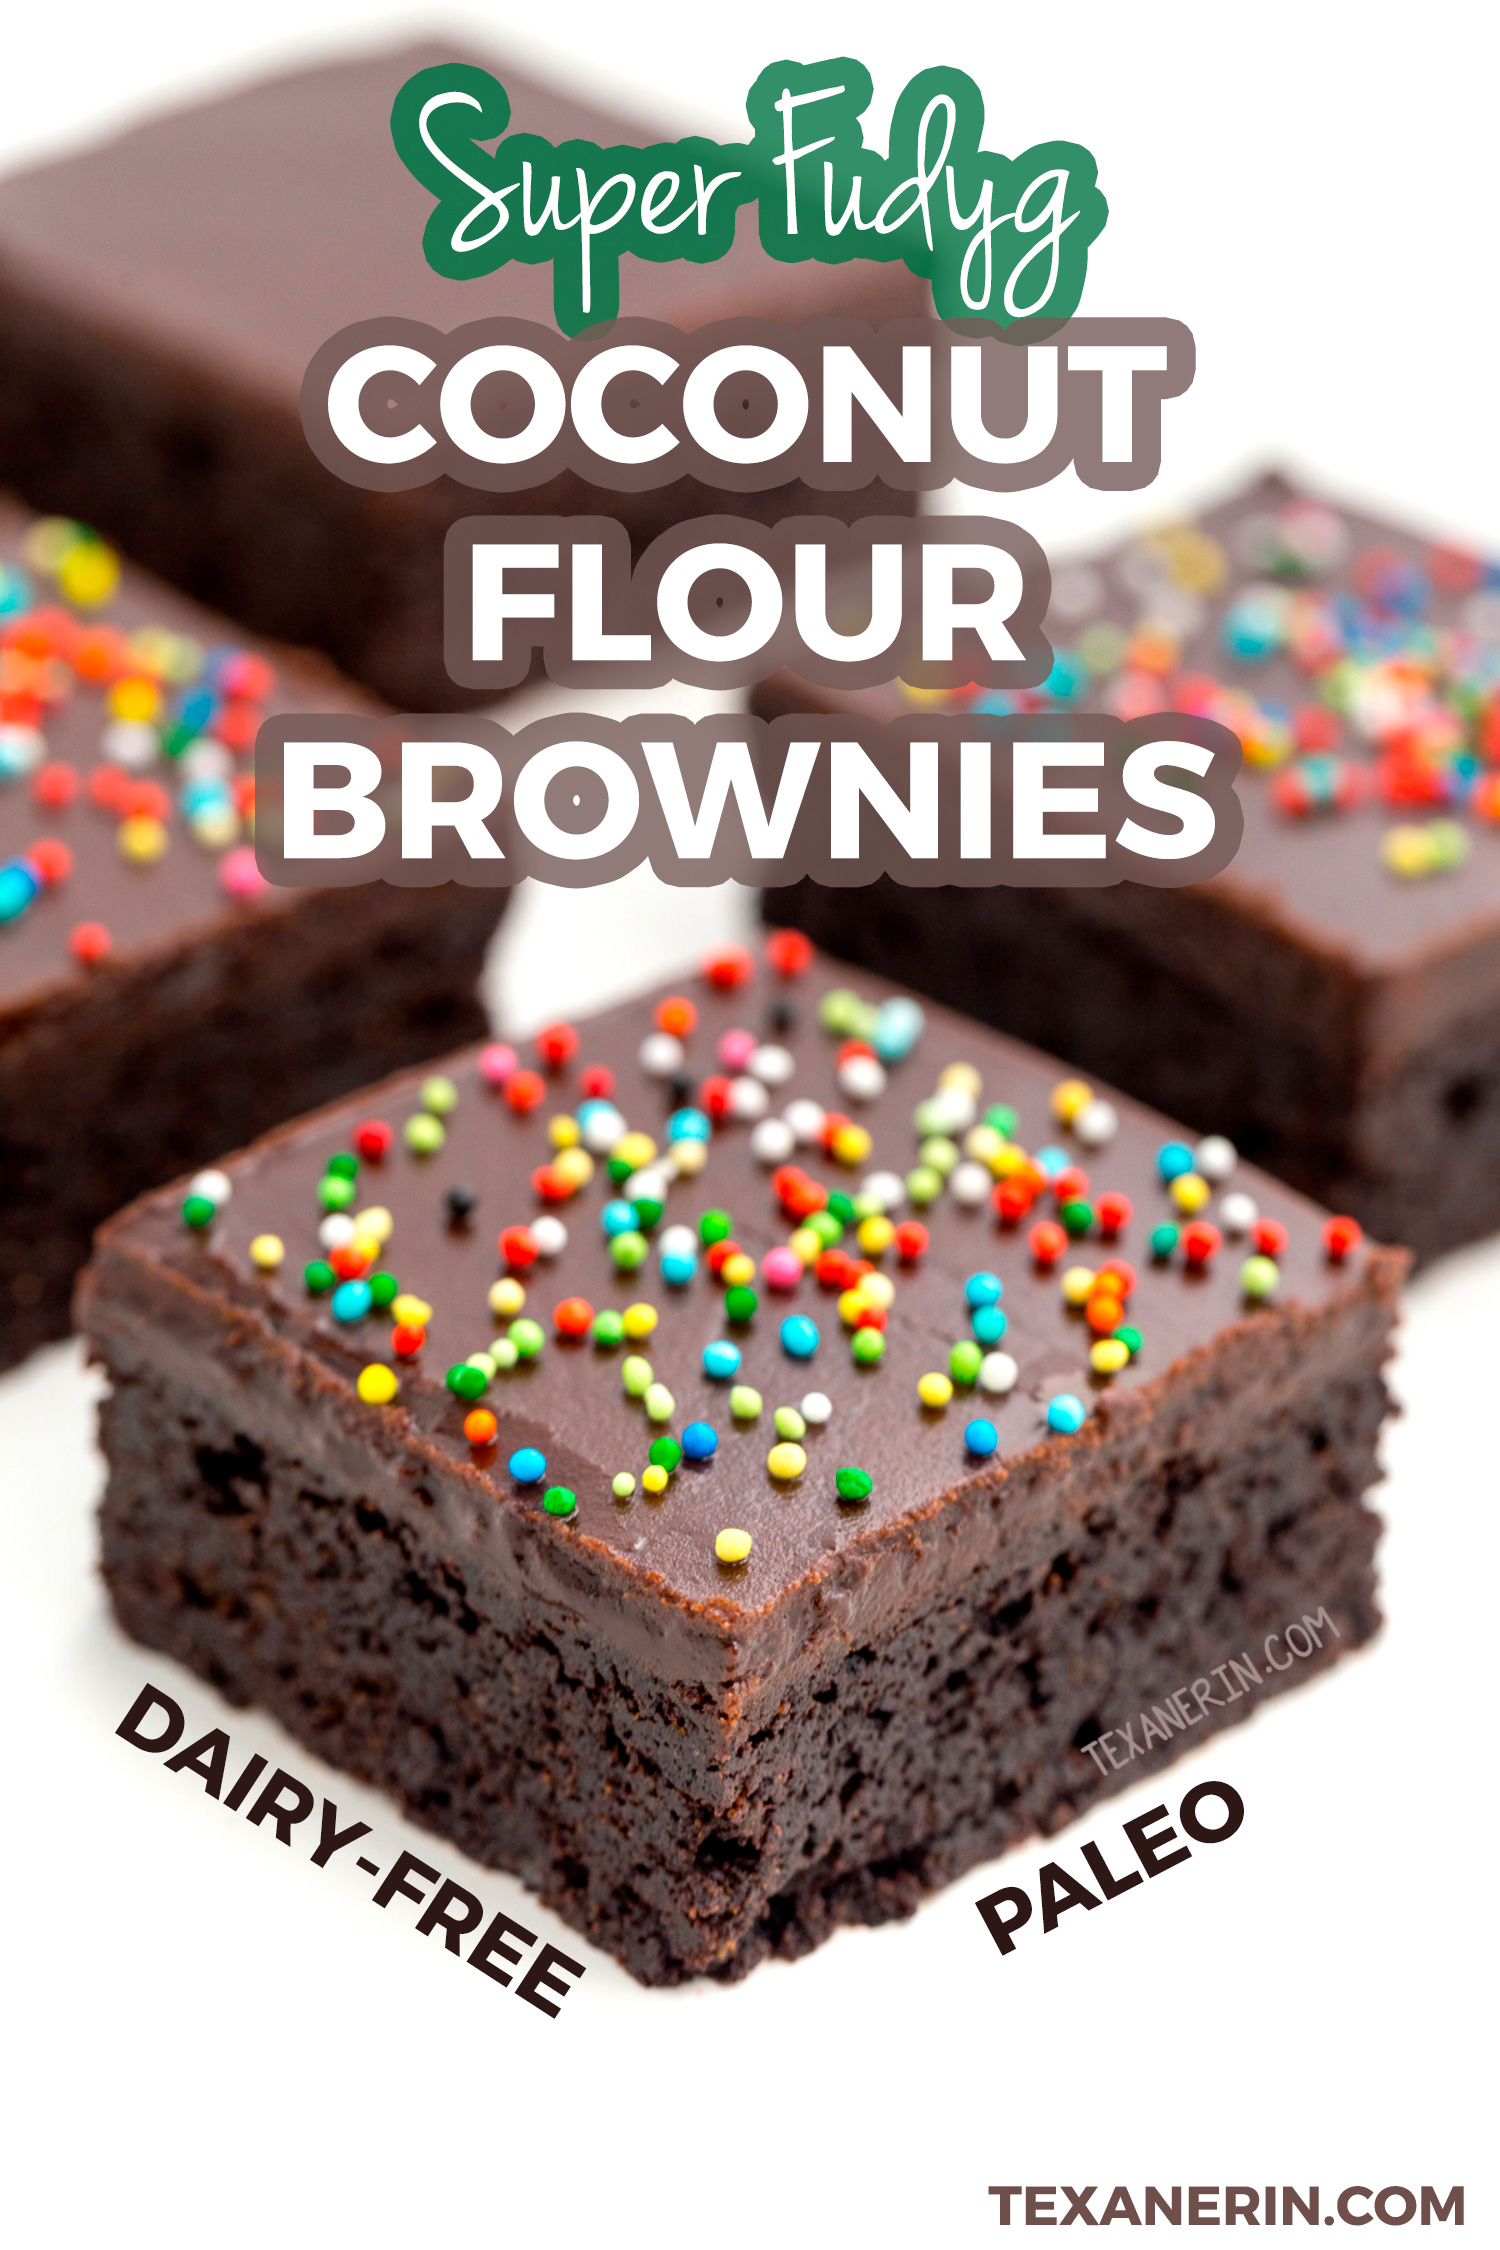 These amazing coconut flour brownies are super fudgy and are also paleo, grain-free and dairy-free! Topped with chocolate fudge frosting.